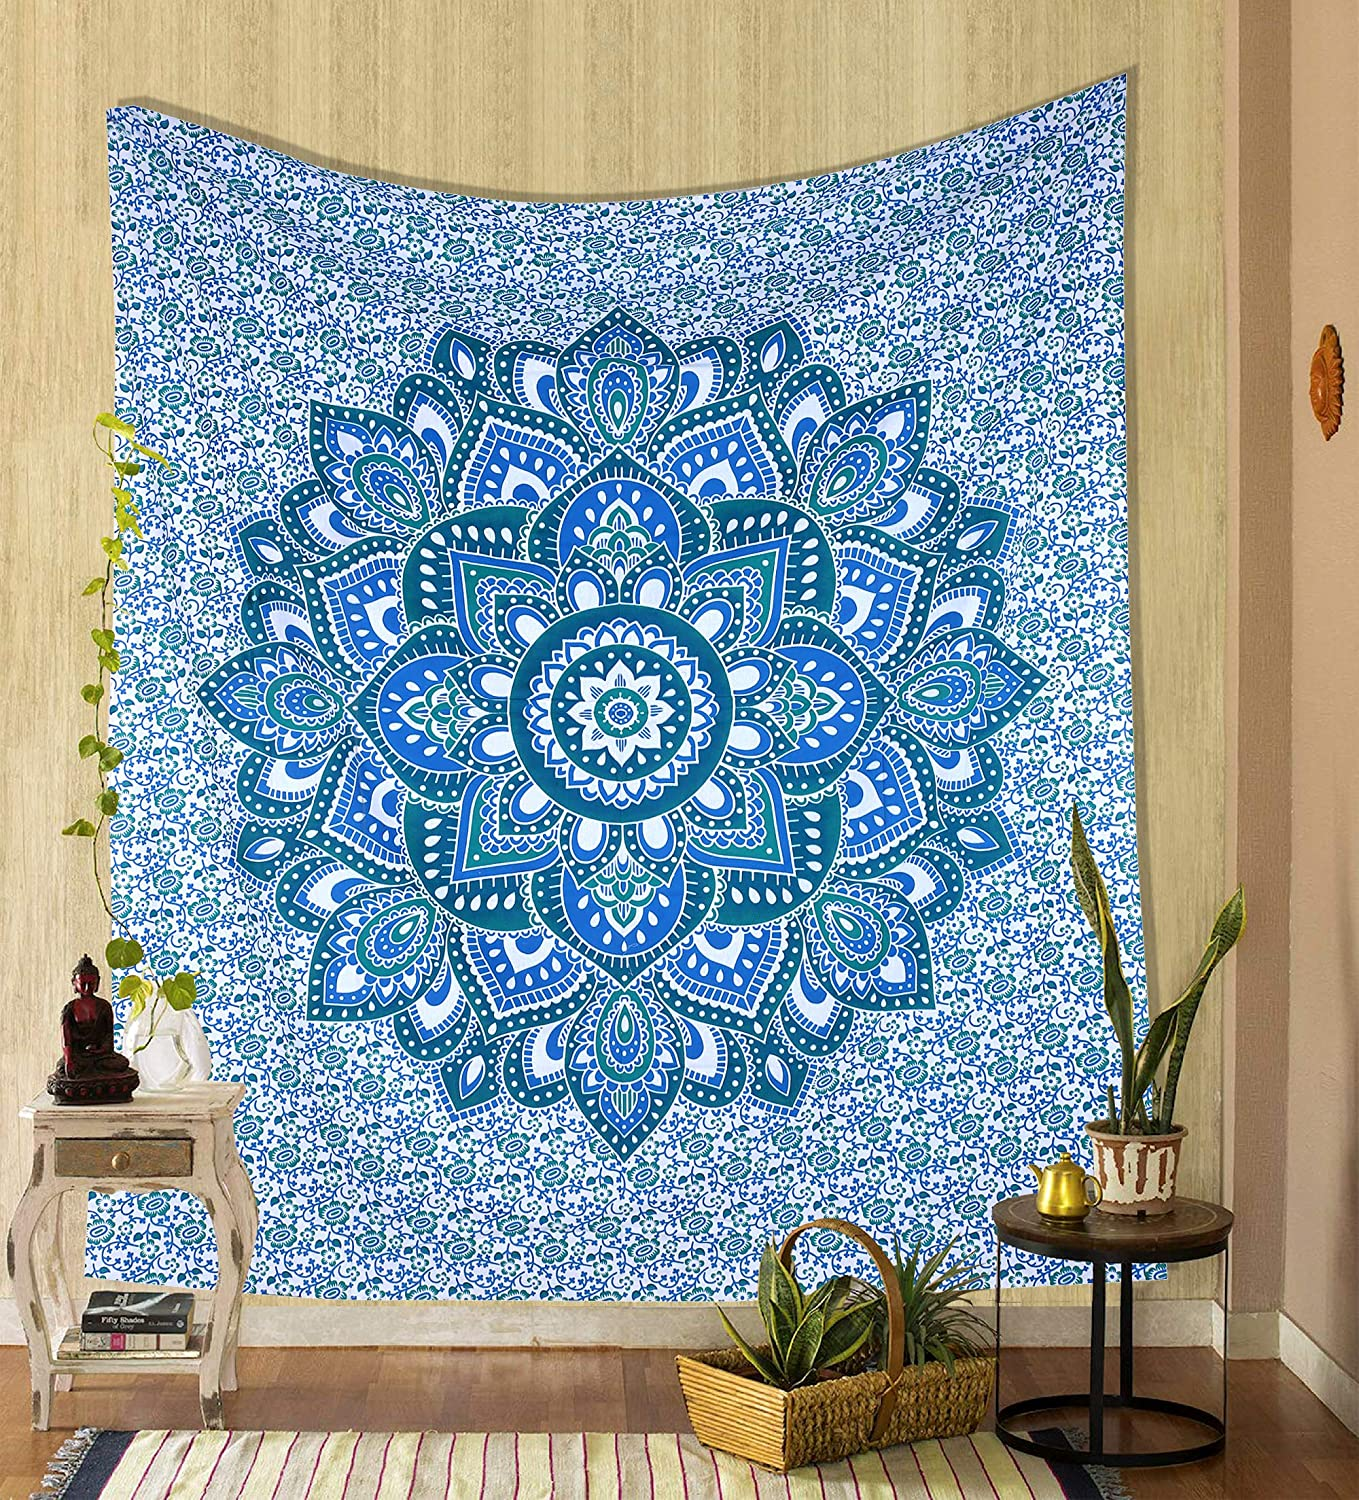 Wall Hanging Boho Tapestry Indian Handmade Floral Ombre Throw Mandala Cotton